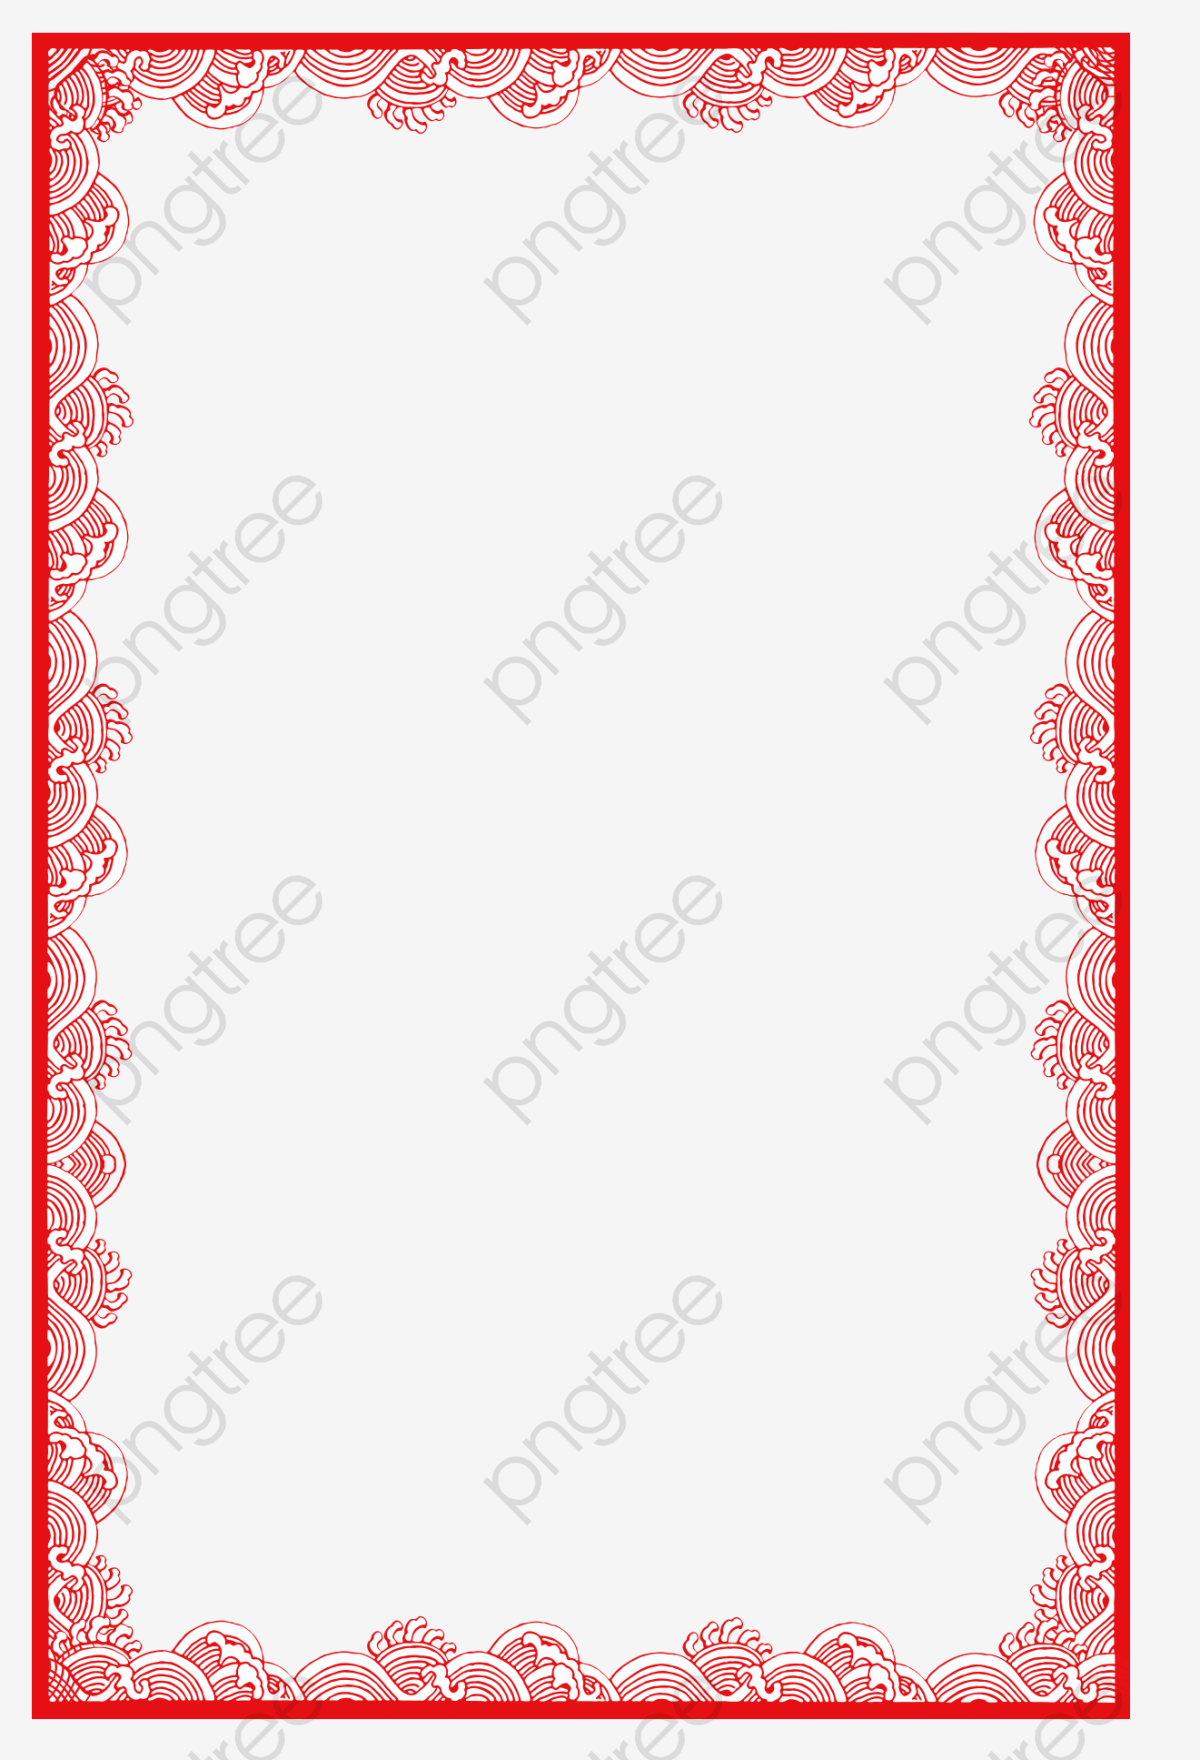 Red Chinese Border, Chinese Clipart, Watermark, Red PNG Transparent.